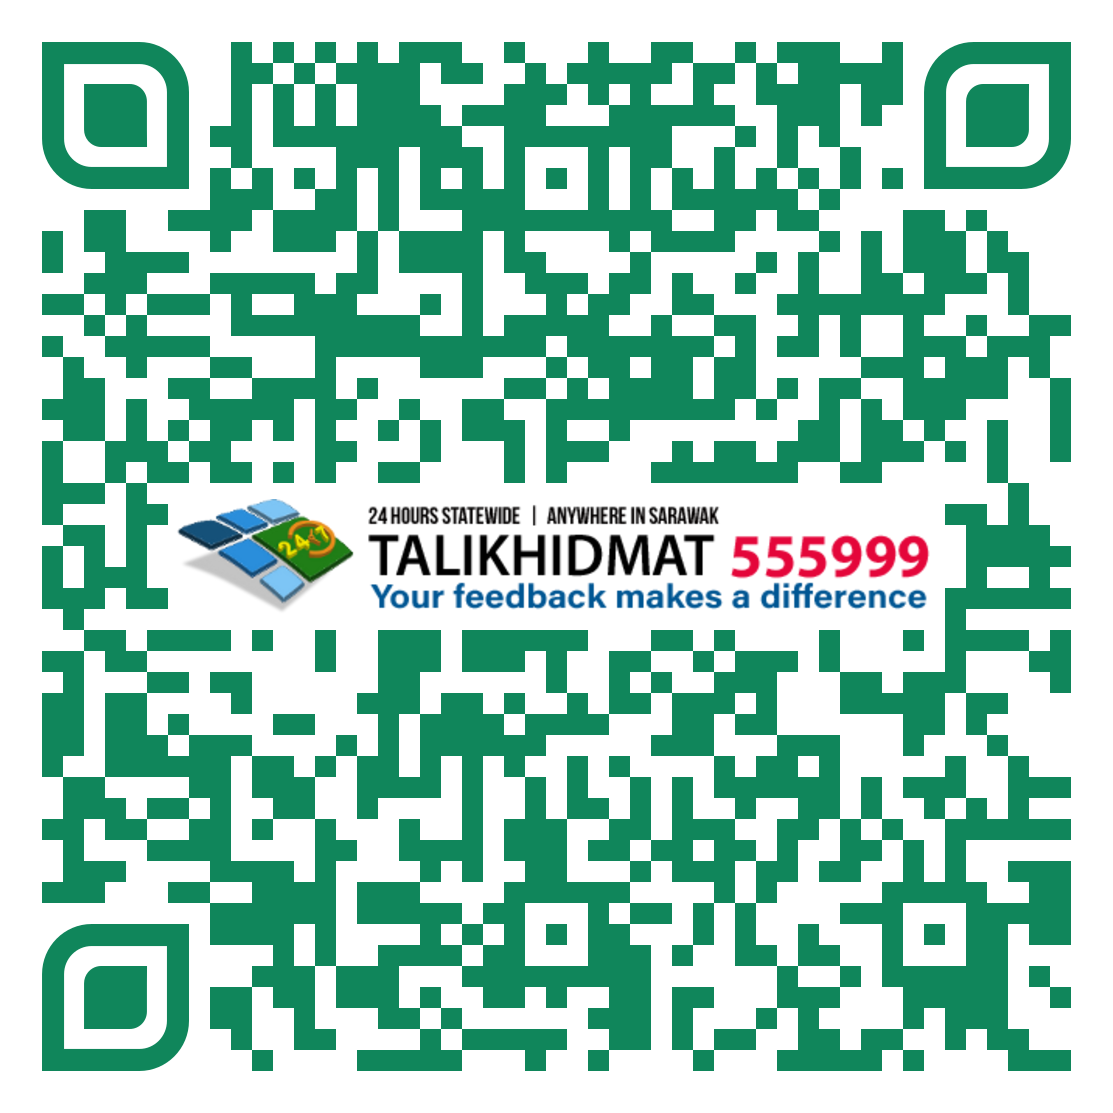 Image QR Code for Talikhidmat iOS Application